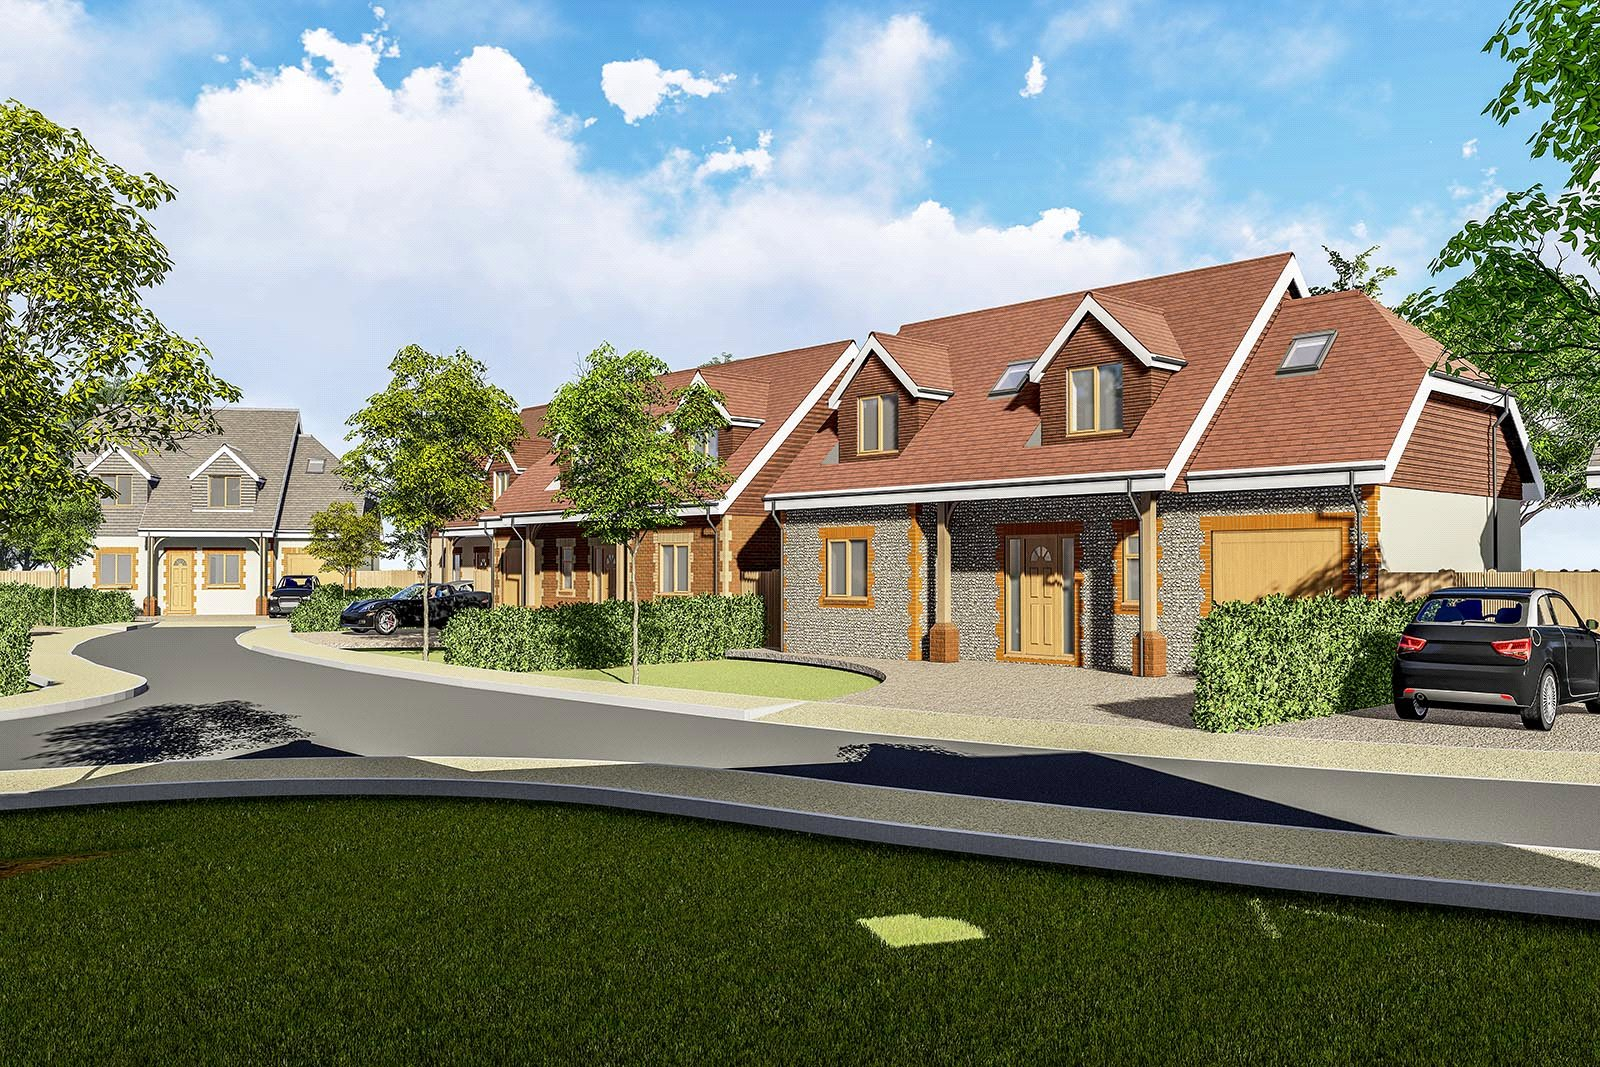 3 bed house for sale in Swallows Gate, Dappers Lane, Angmering 6